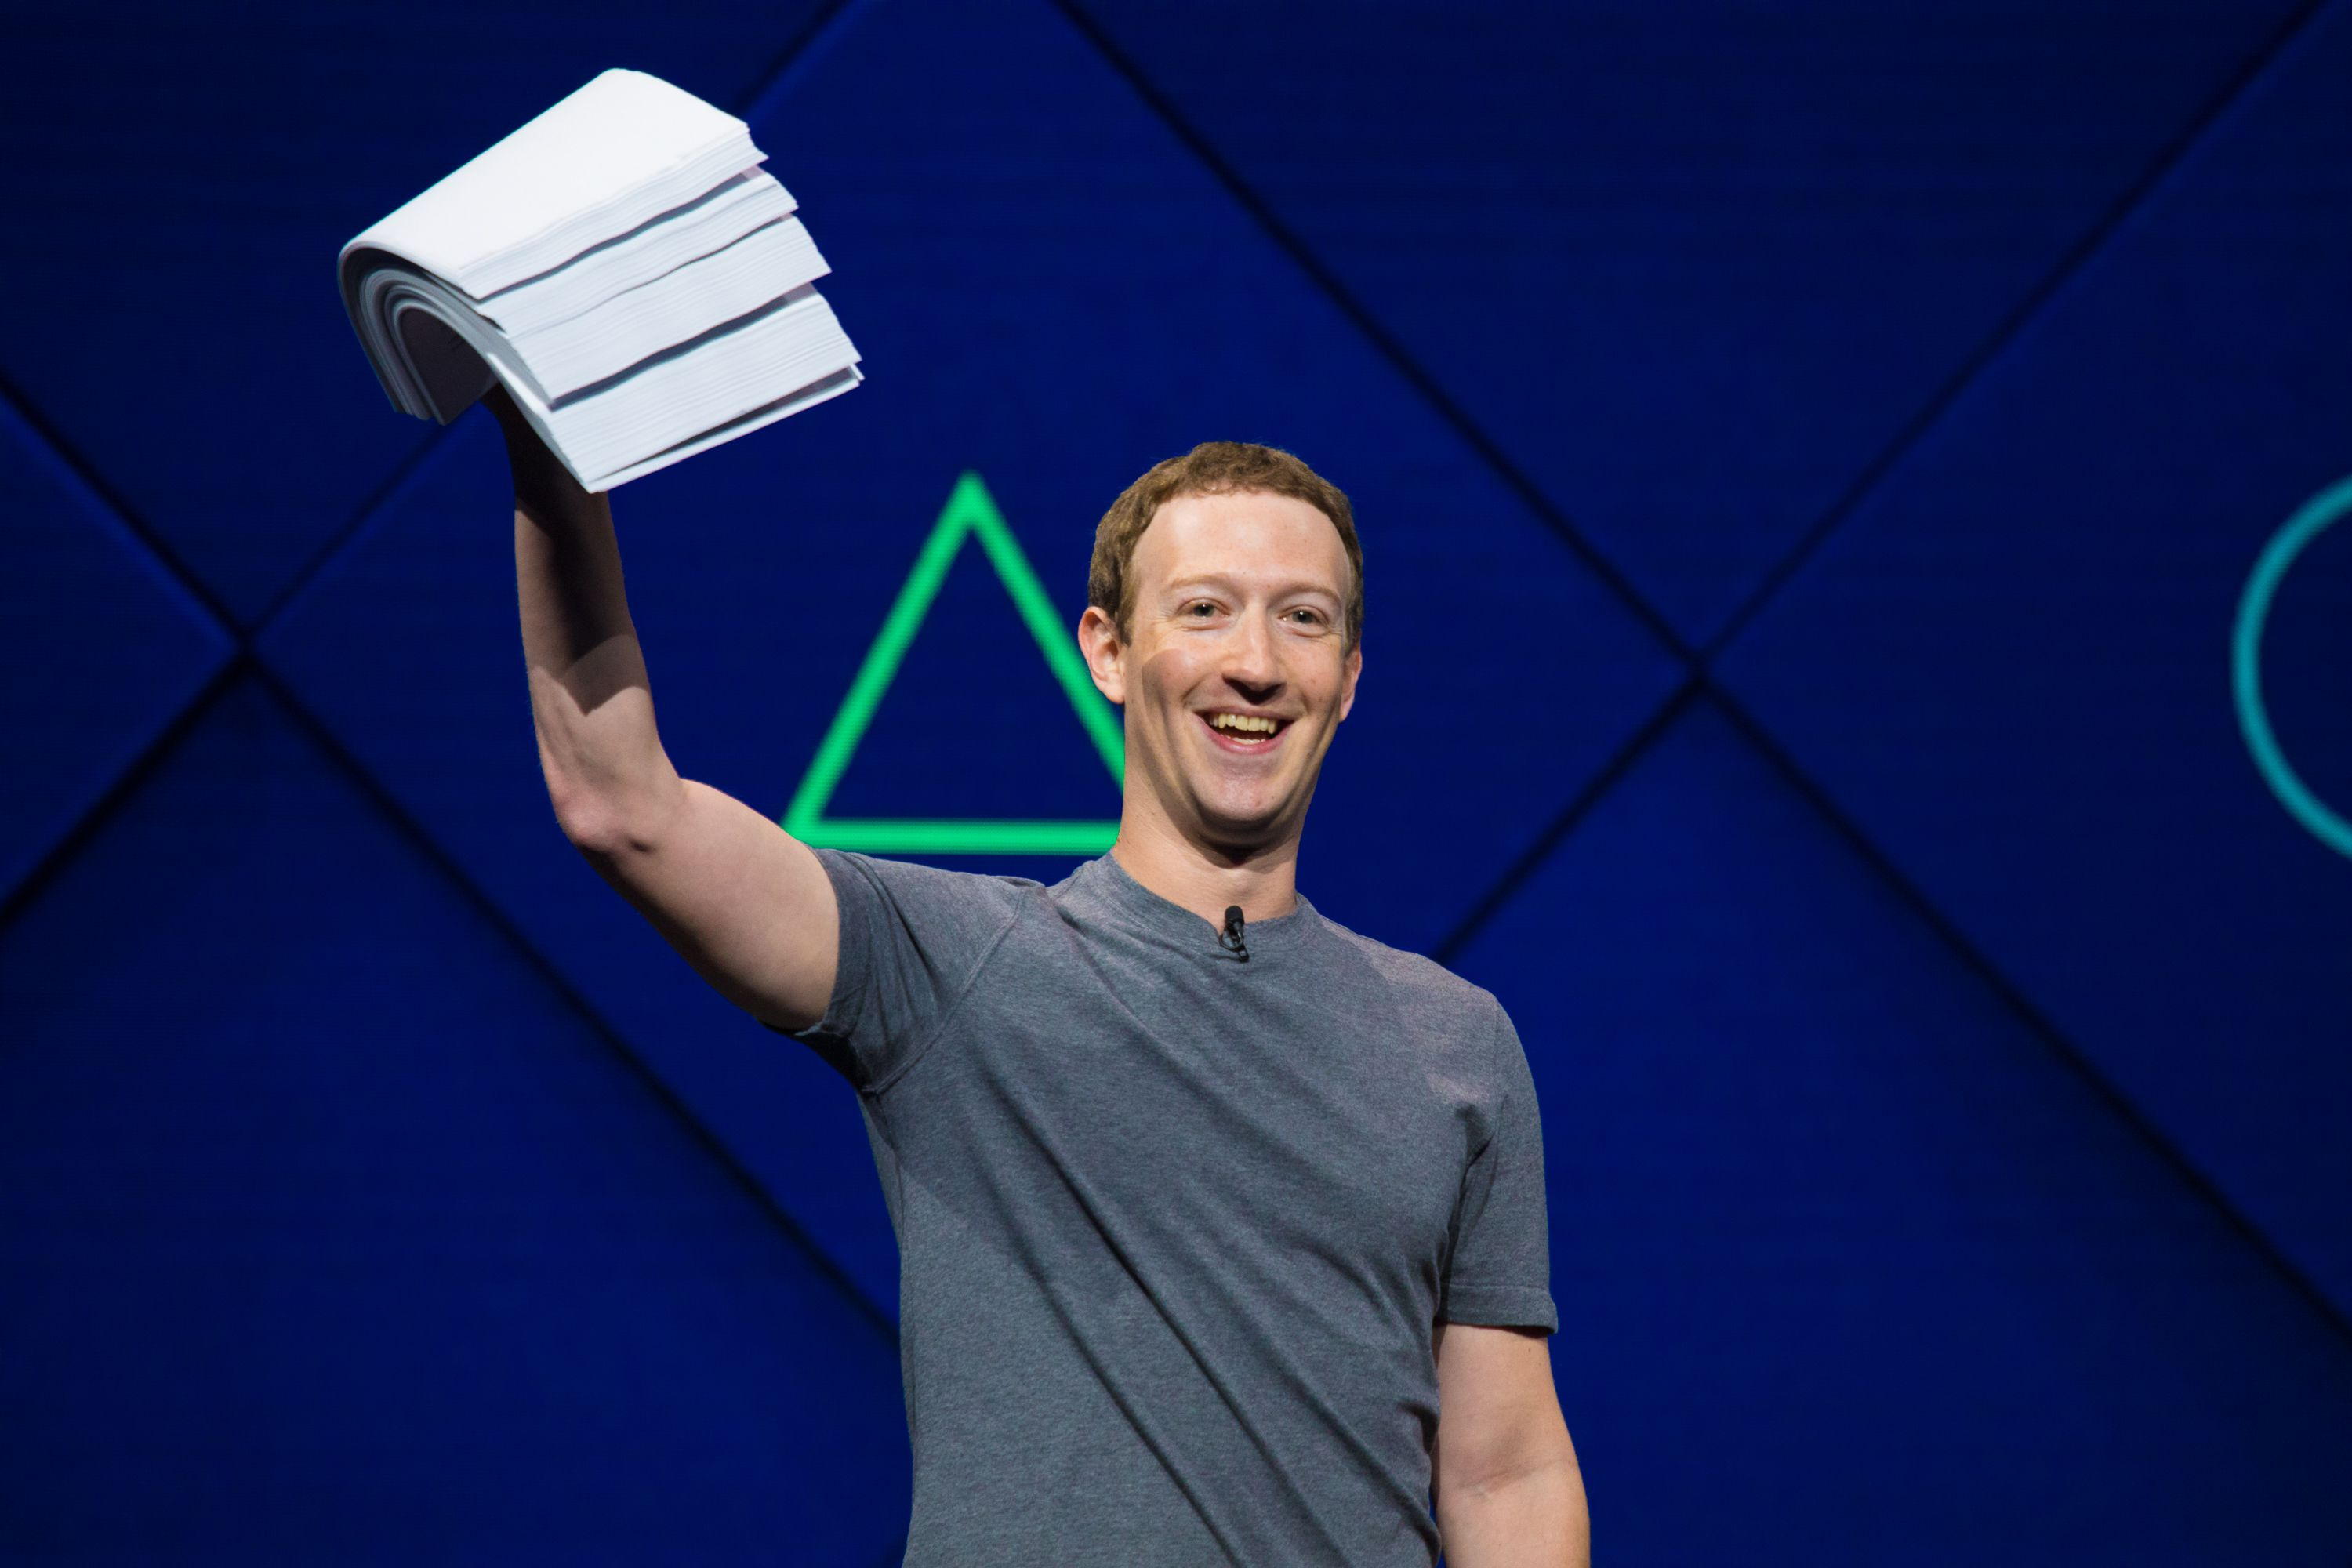 Mark Zuckerberg sees 'progress' for Facebook after tumultuous year